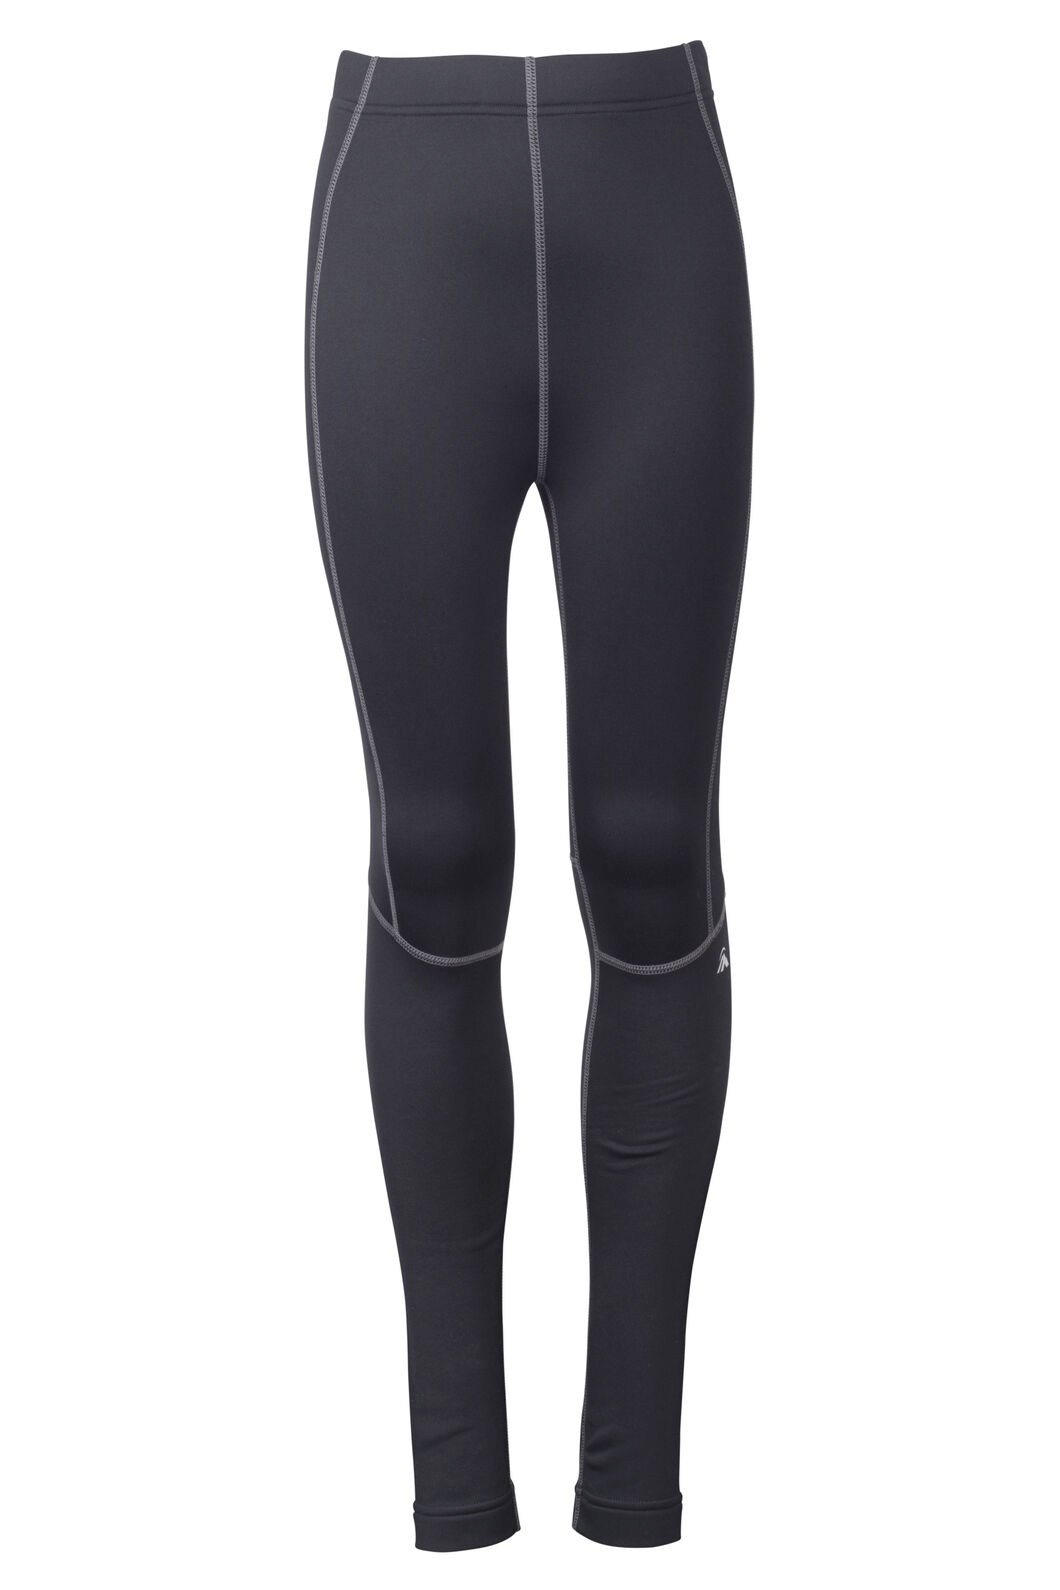 Traverse Fleece Tights - Kids', Black, hi-res